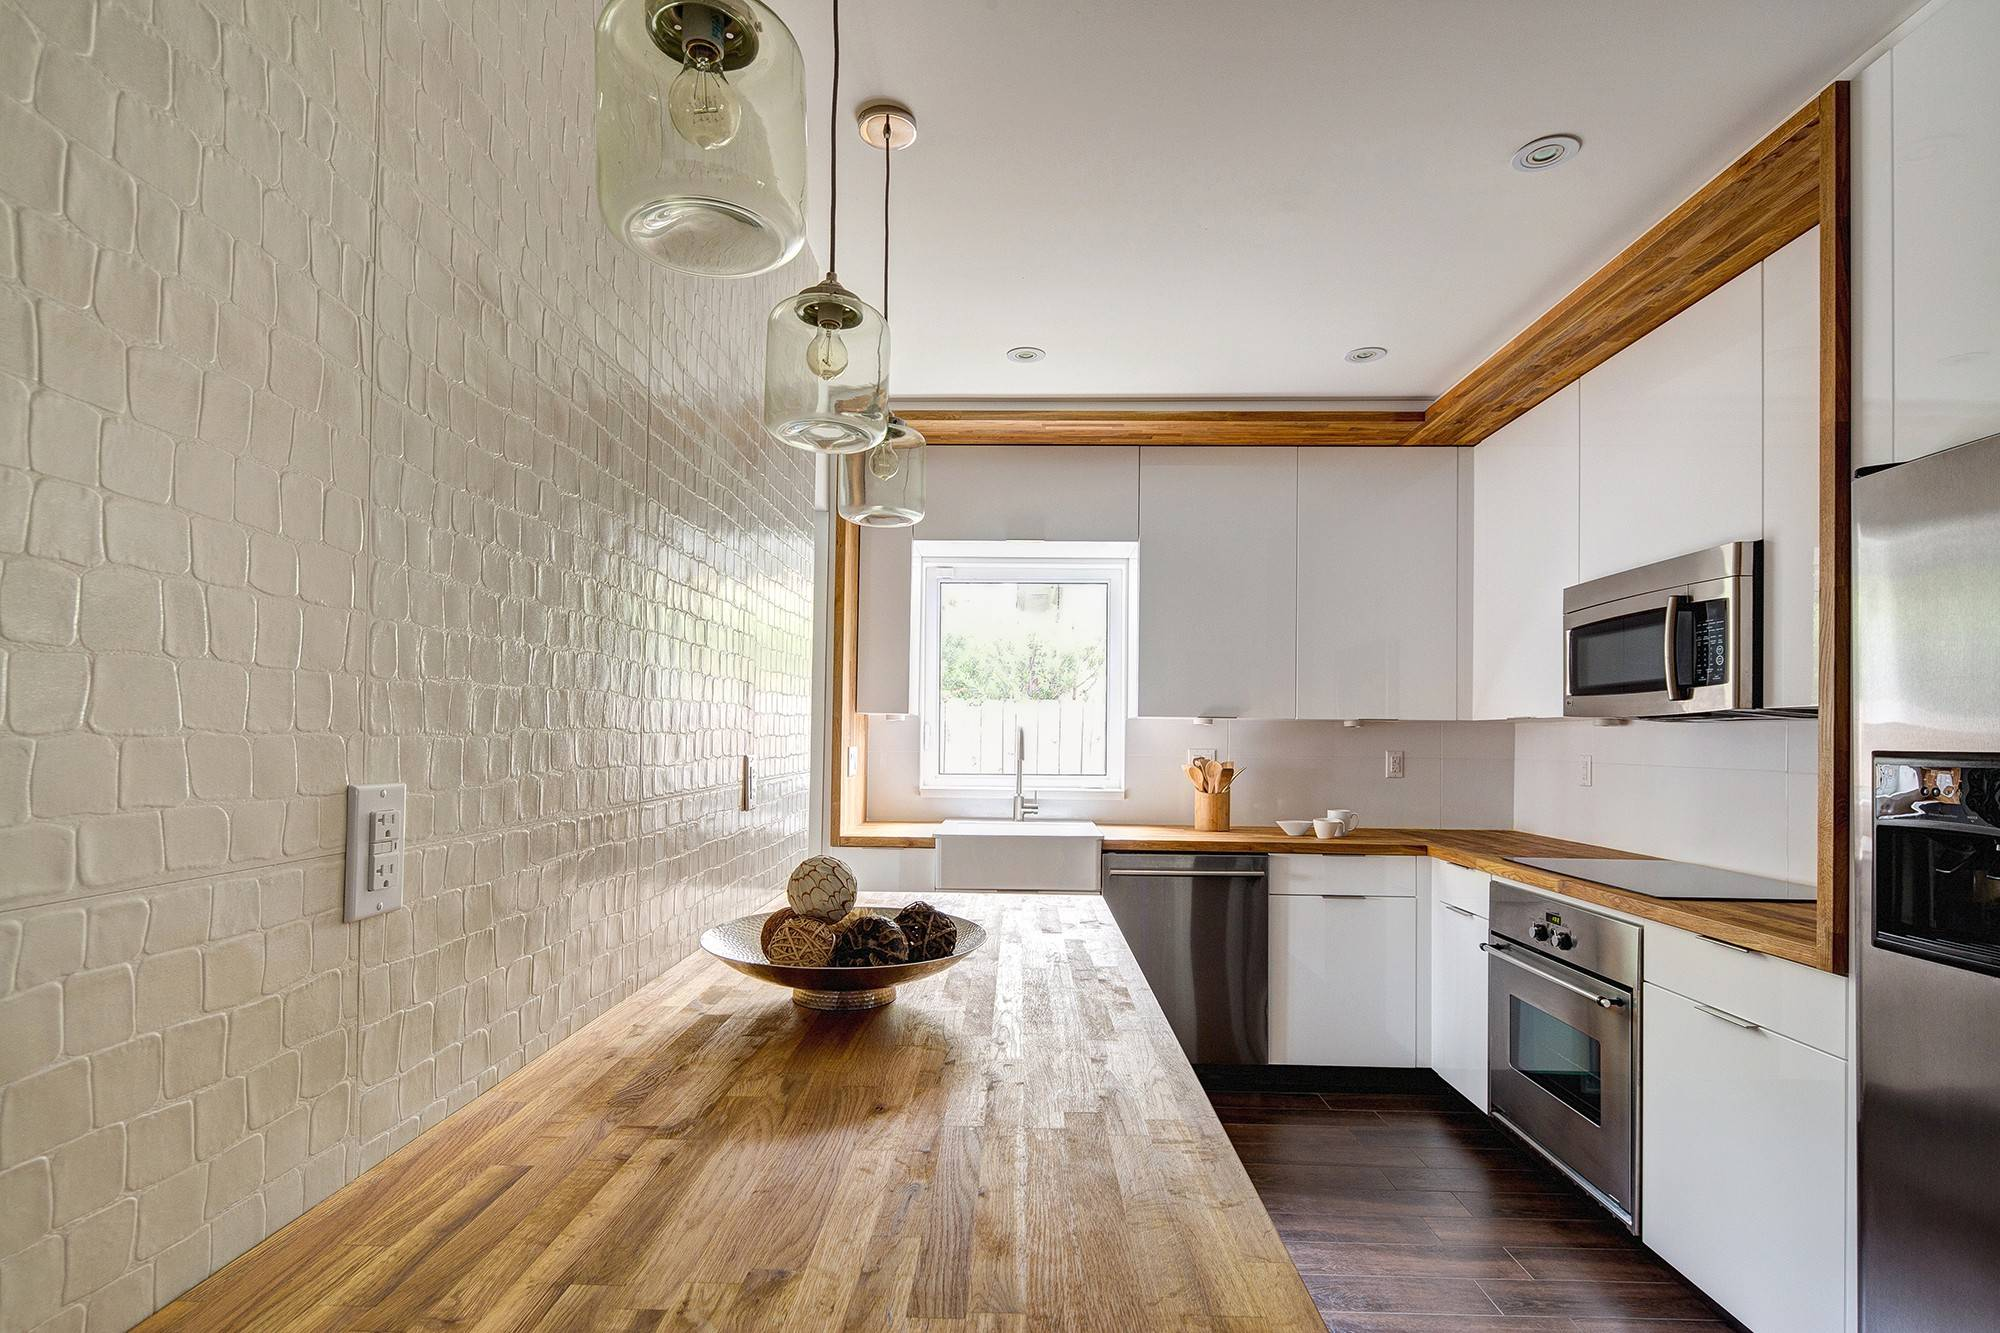 This contemporary kitchen won second place in the NKBA Design Competition's small-kitchen category. It was designed by German Brun of Den Architecture.